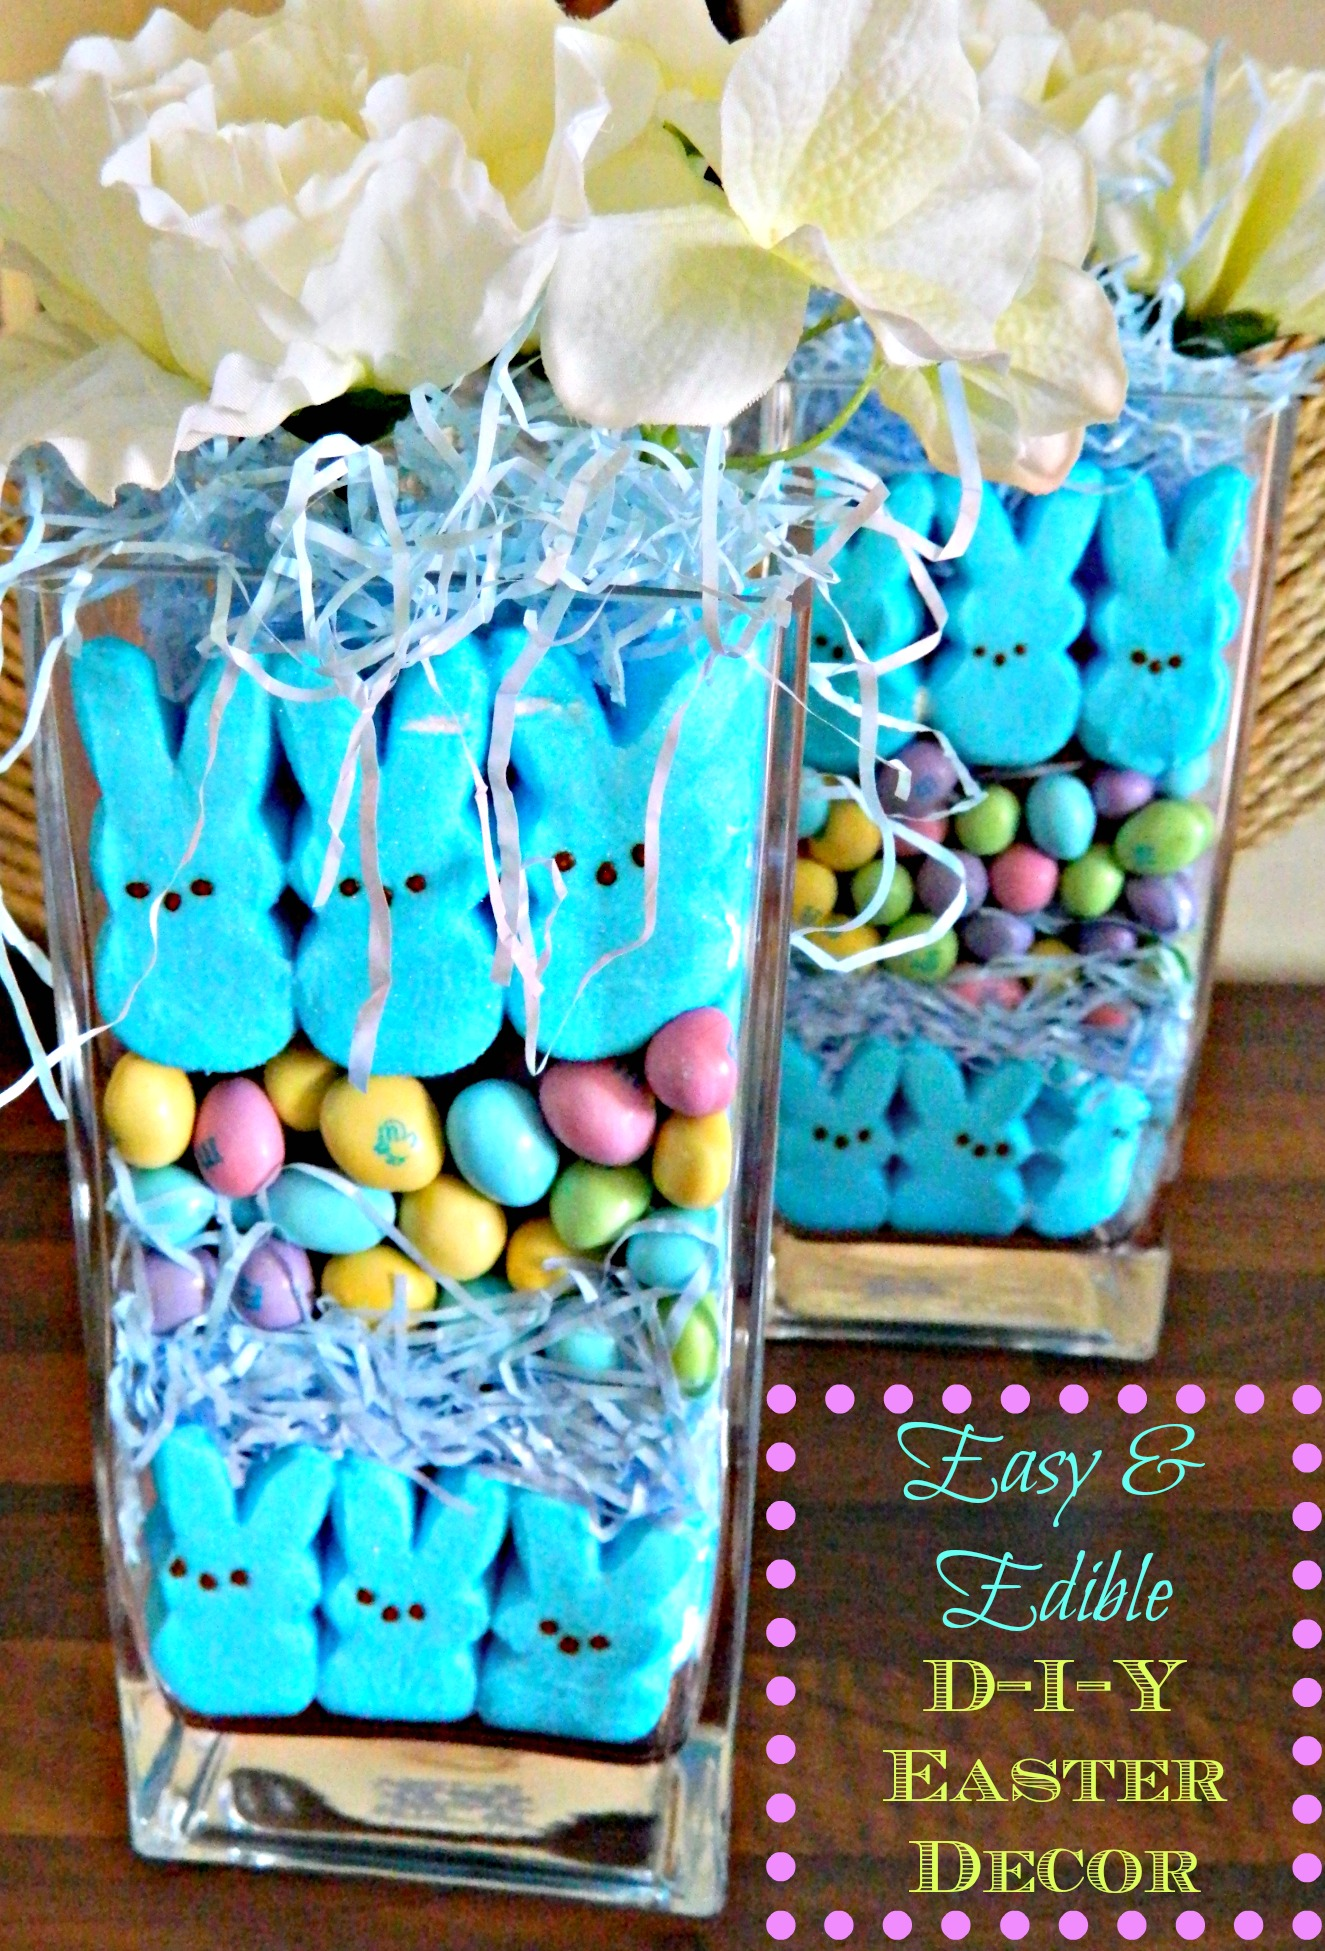 Easy d i y easter decorations finding silver linings for Easter decorations ideas for the home